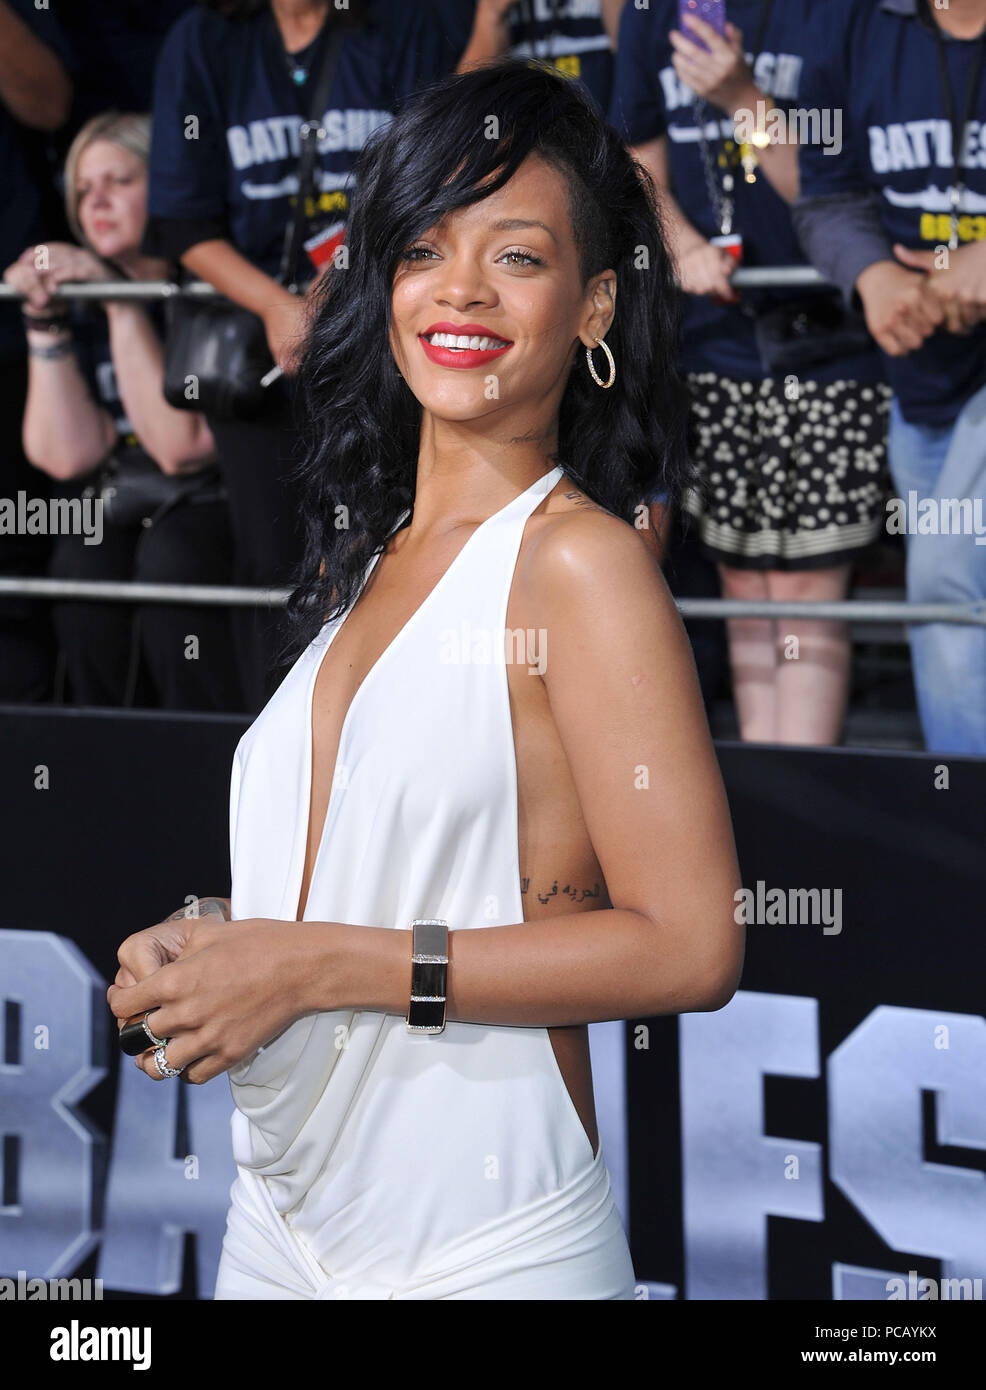 Rihanna At Battleship Premiere At The Nokia Theatre In Los Angeles A Rihanna 01 Red Carpet Event Vertical Usa Film Industry Celebrities Photography Bestof Arts Culture And Entertainment Topix Celebrities Fashion